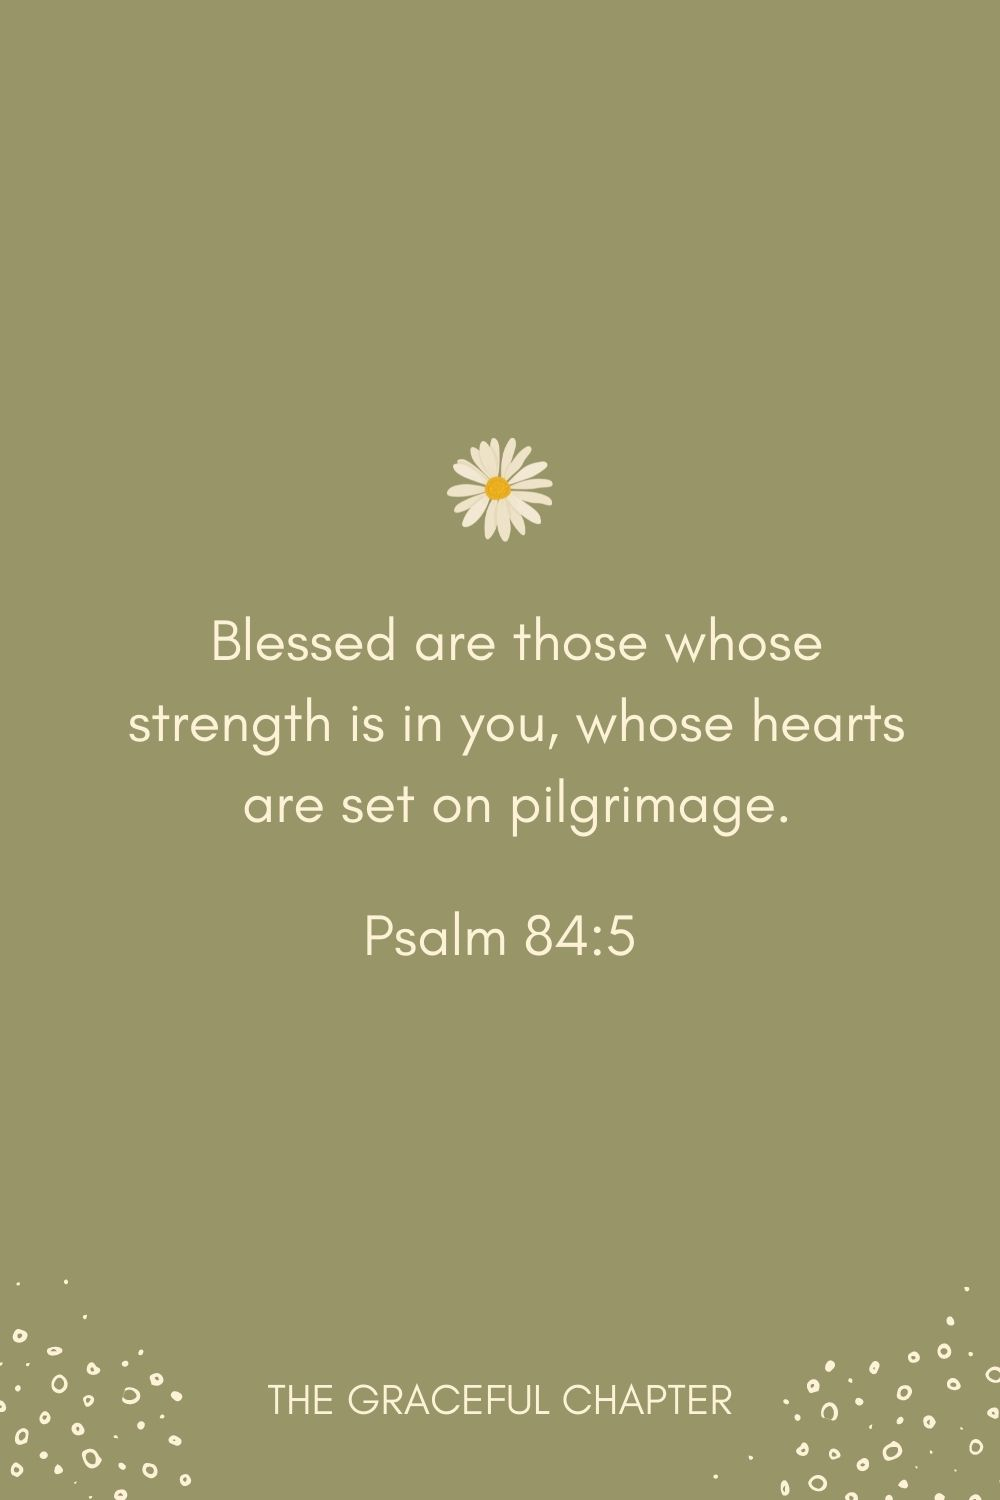 Blessed are those whose strength is in you, whose hearts are set on pilgrimage. Psalm 84:5